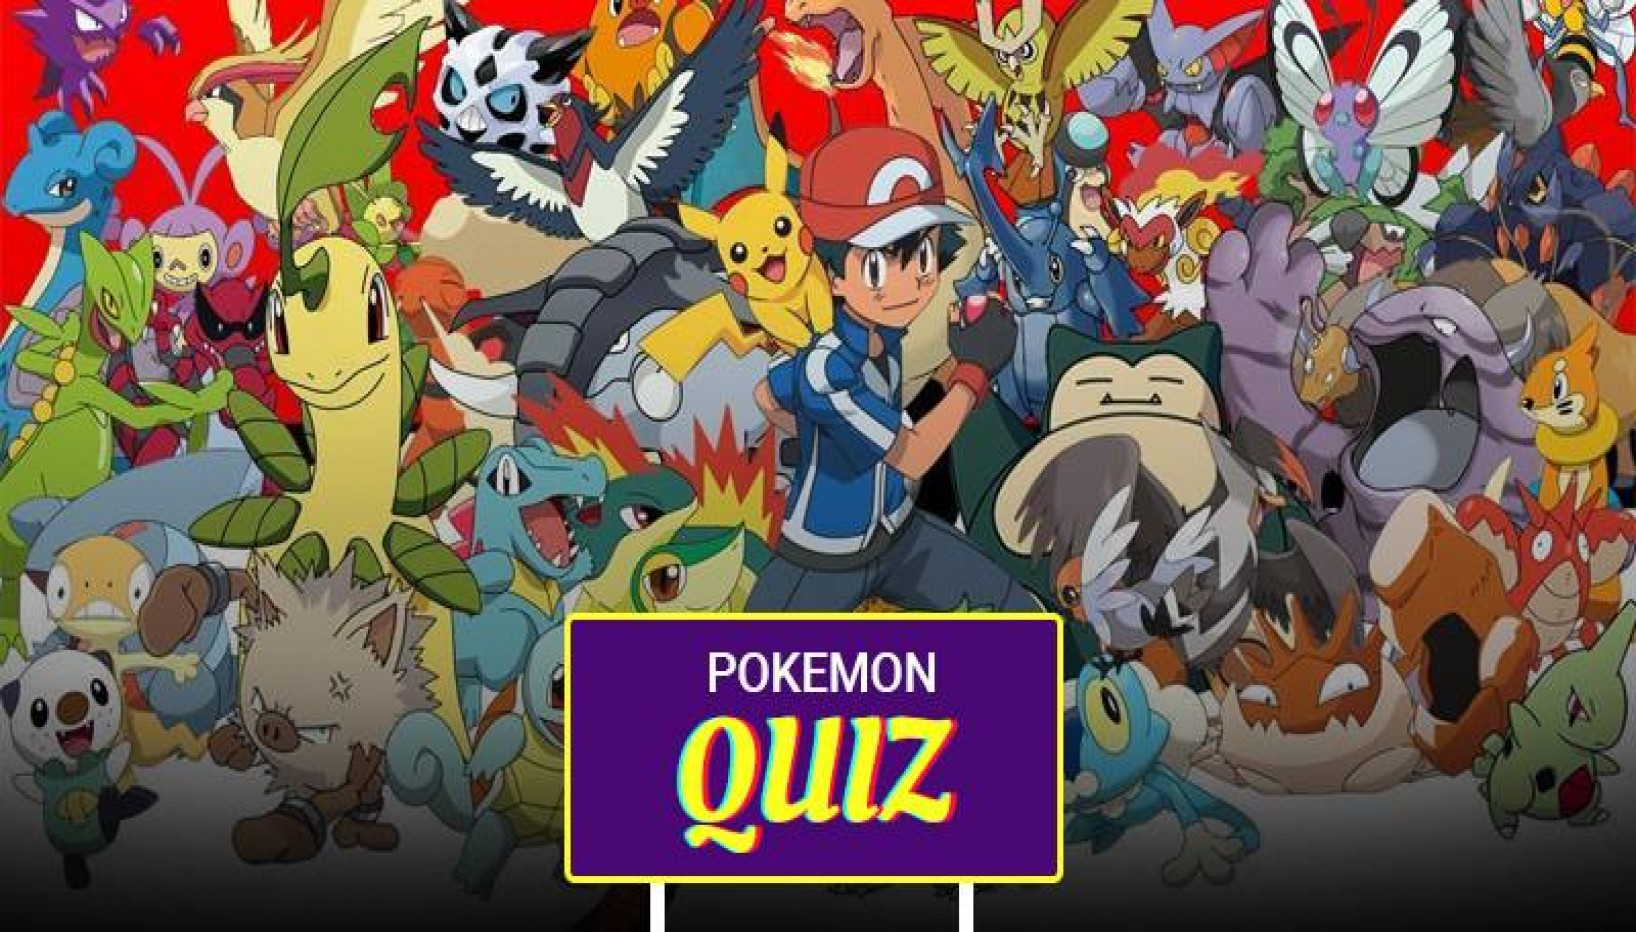 Only A True Pokémon Master Can Get A 10/10 On This Pokémon Quiz